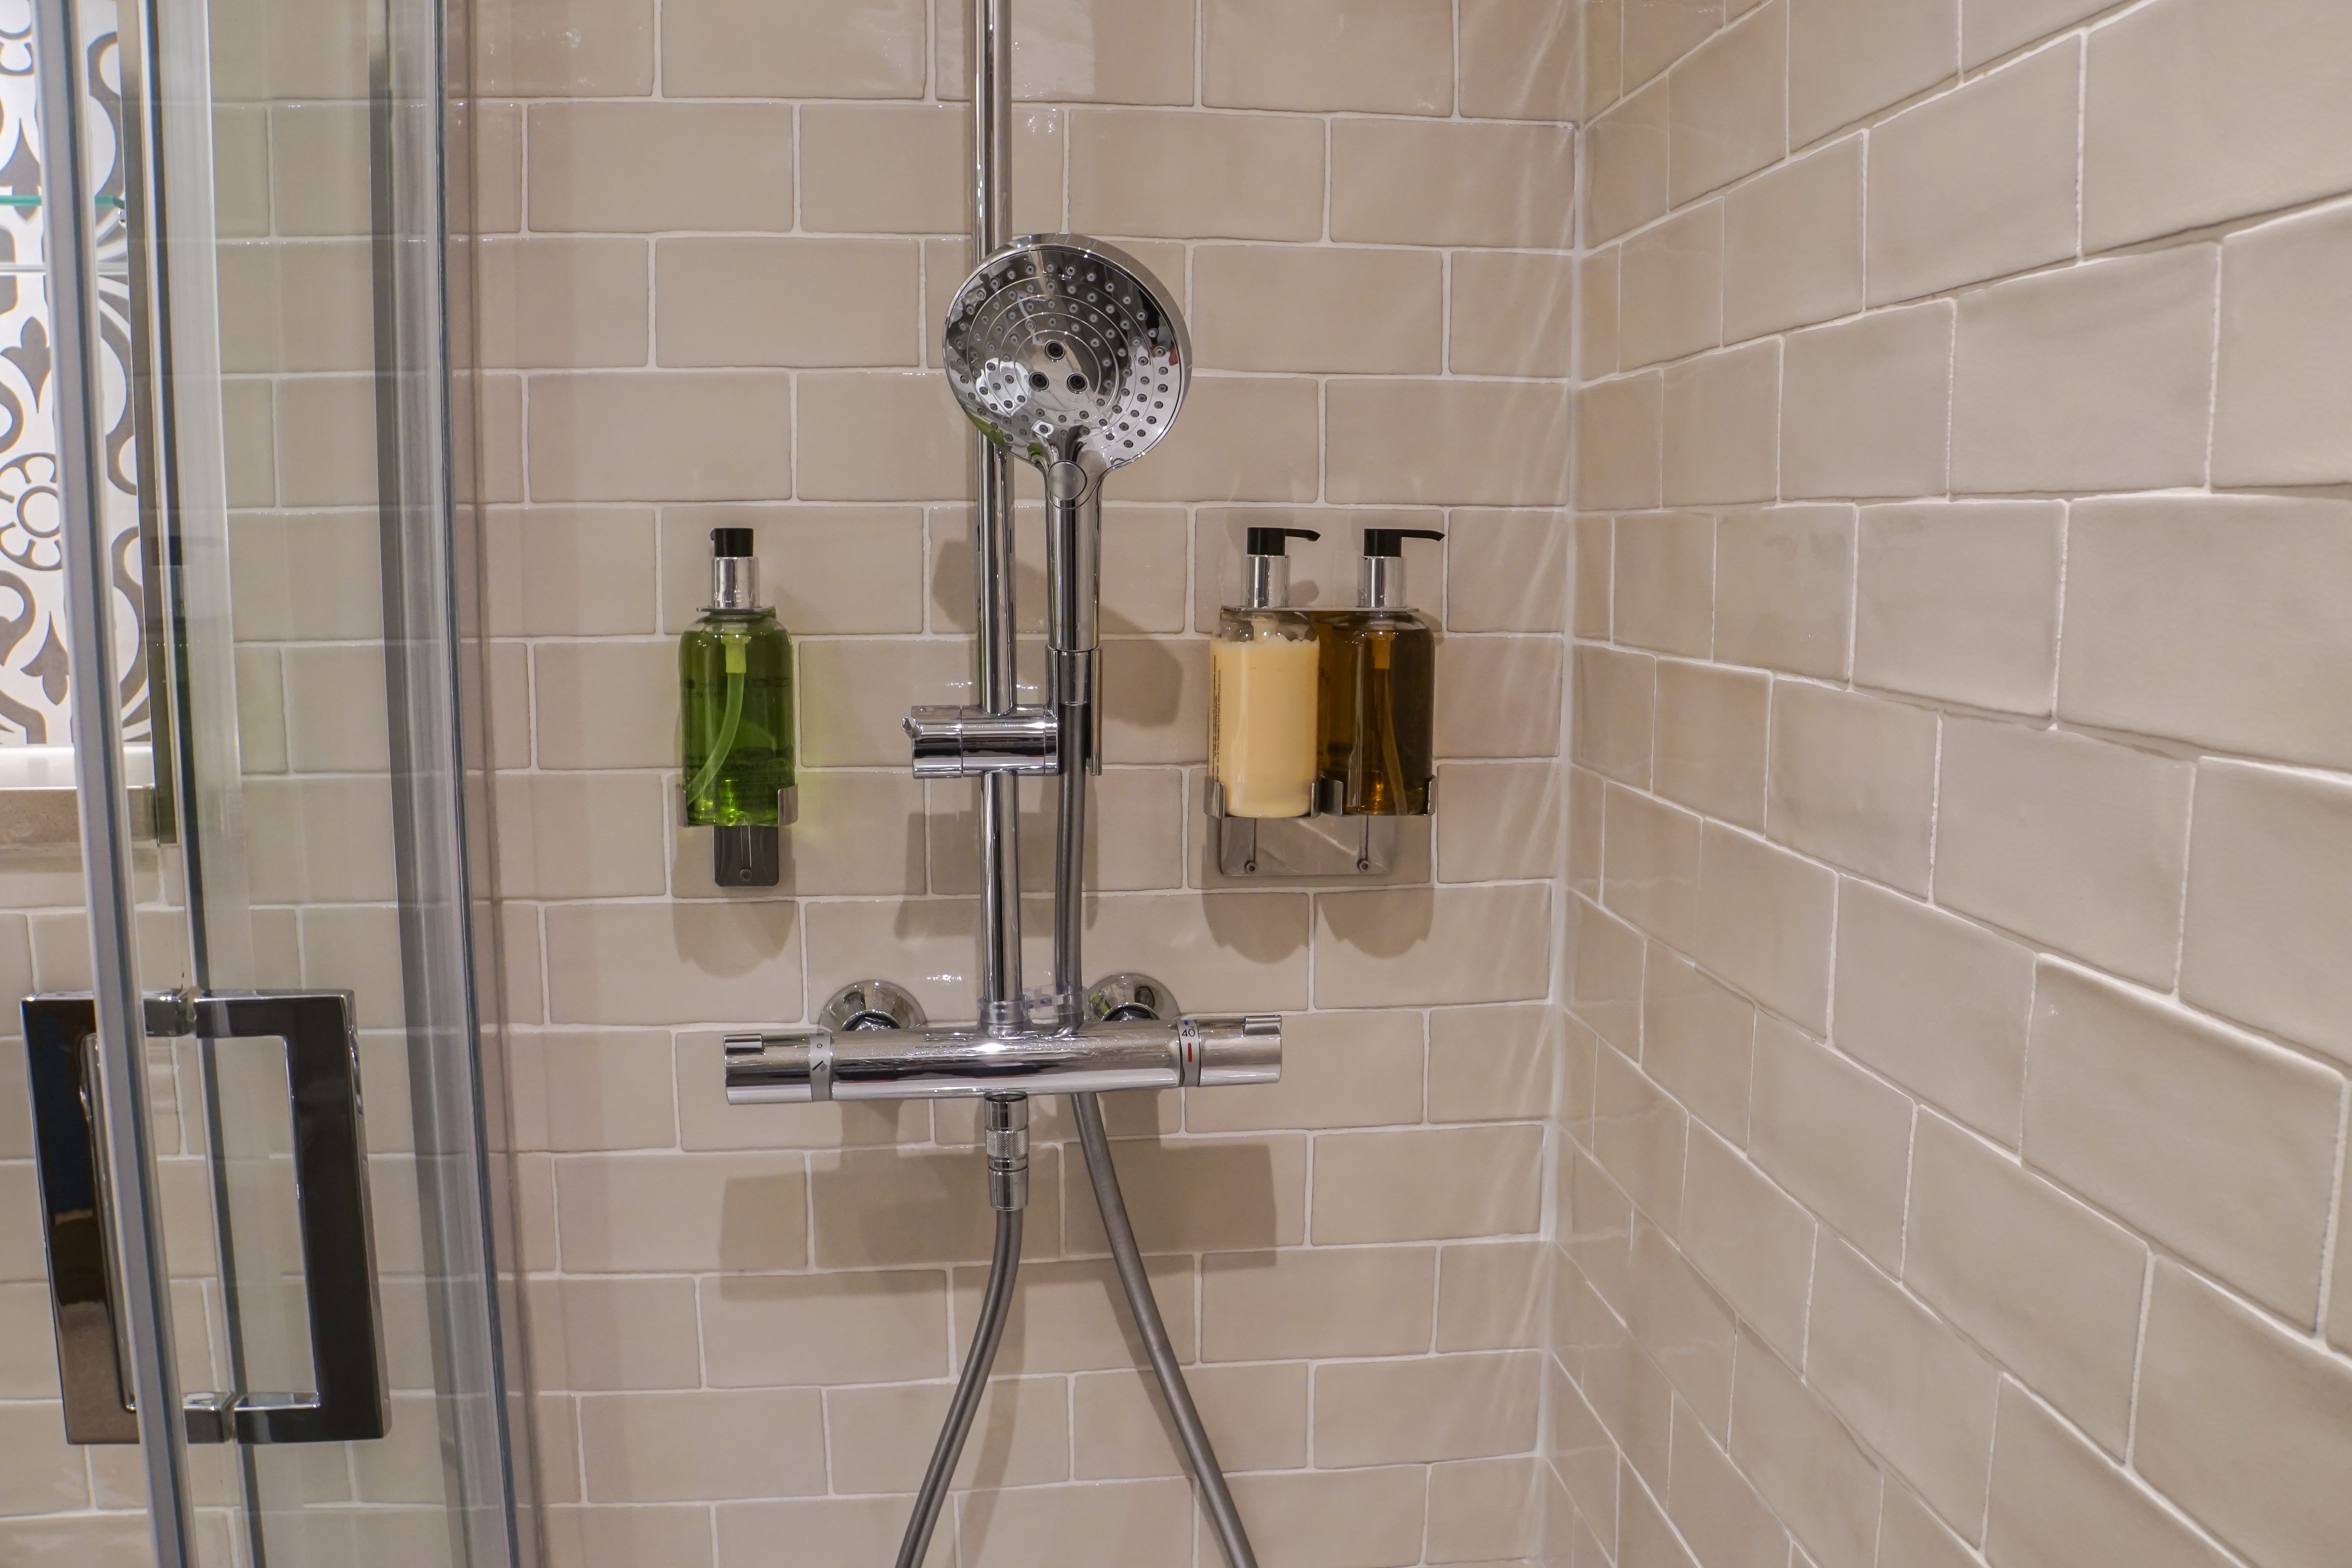 How To Cover Ugly Shower Tile Home Guides Sf Gate